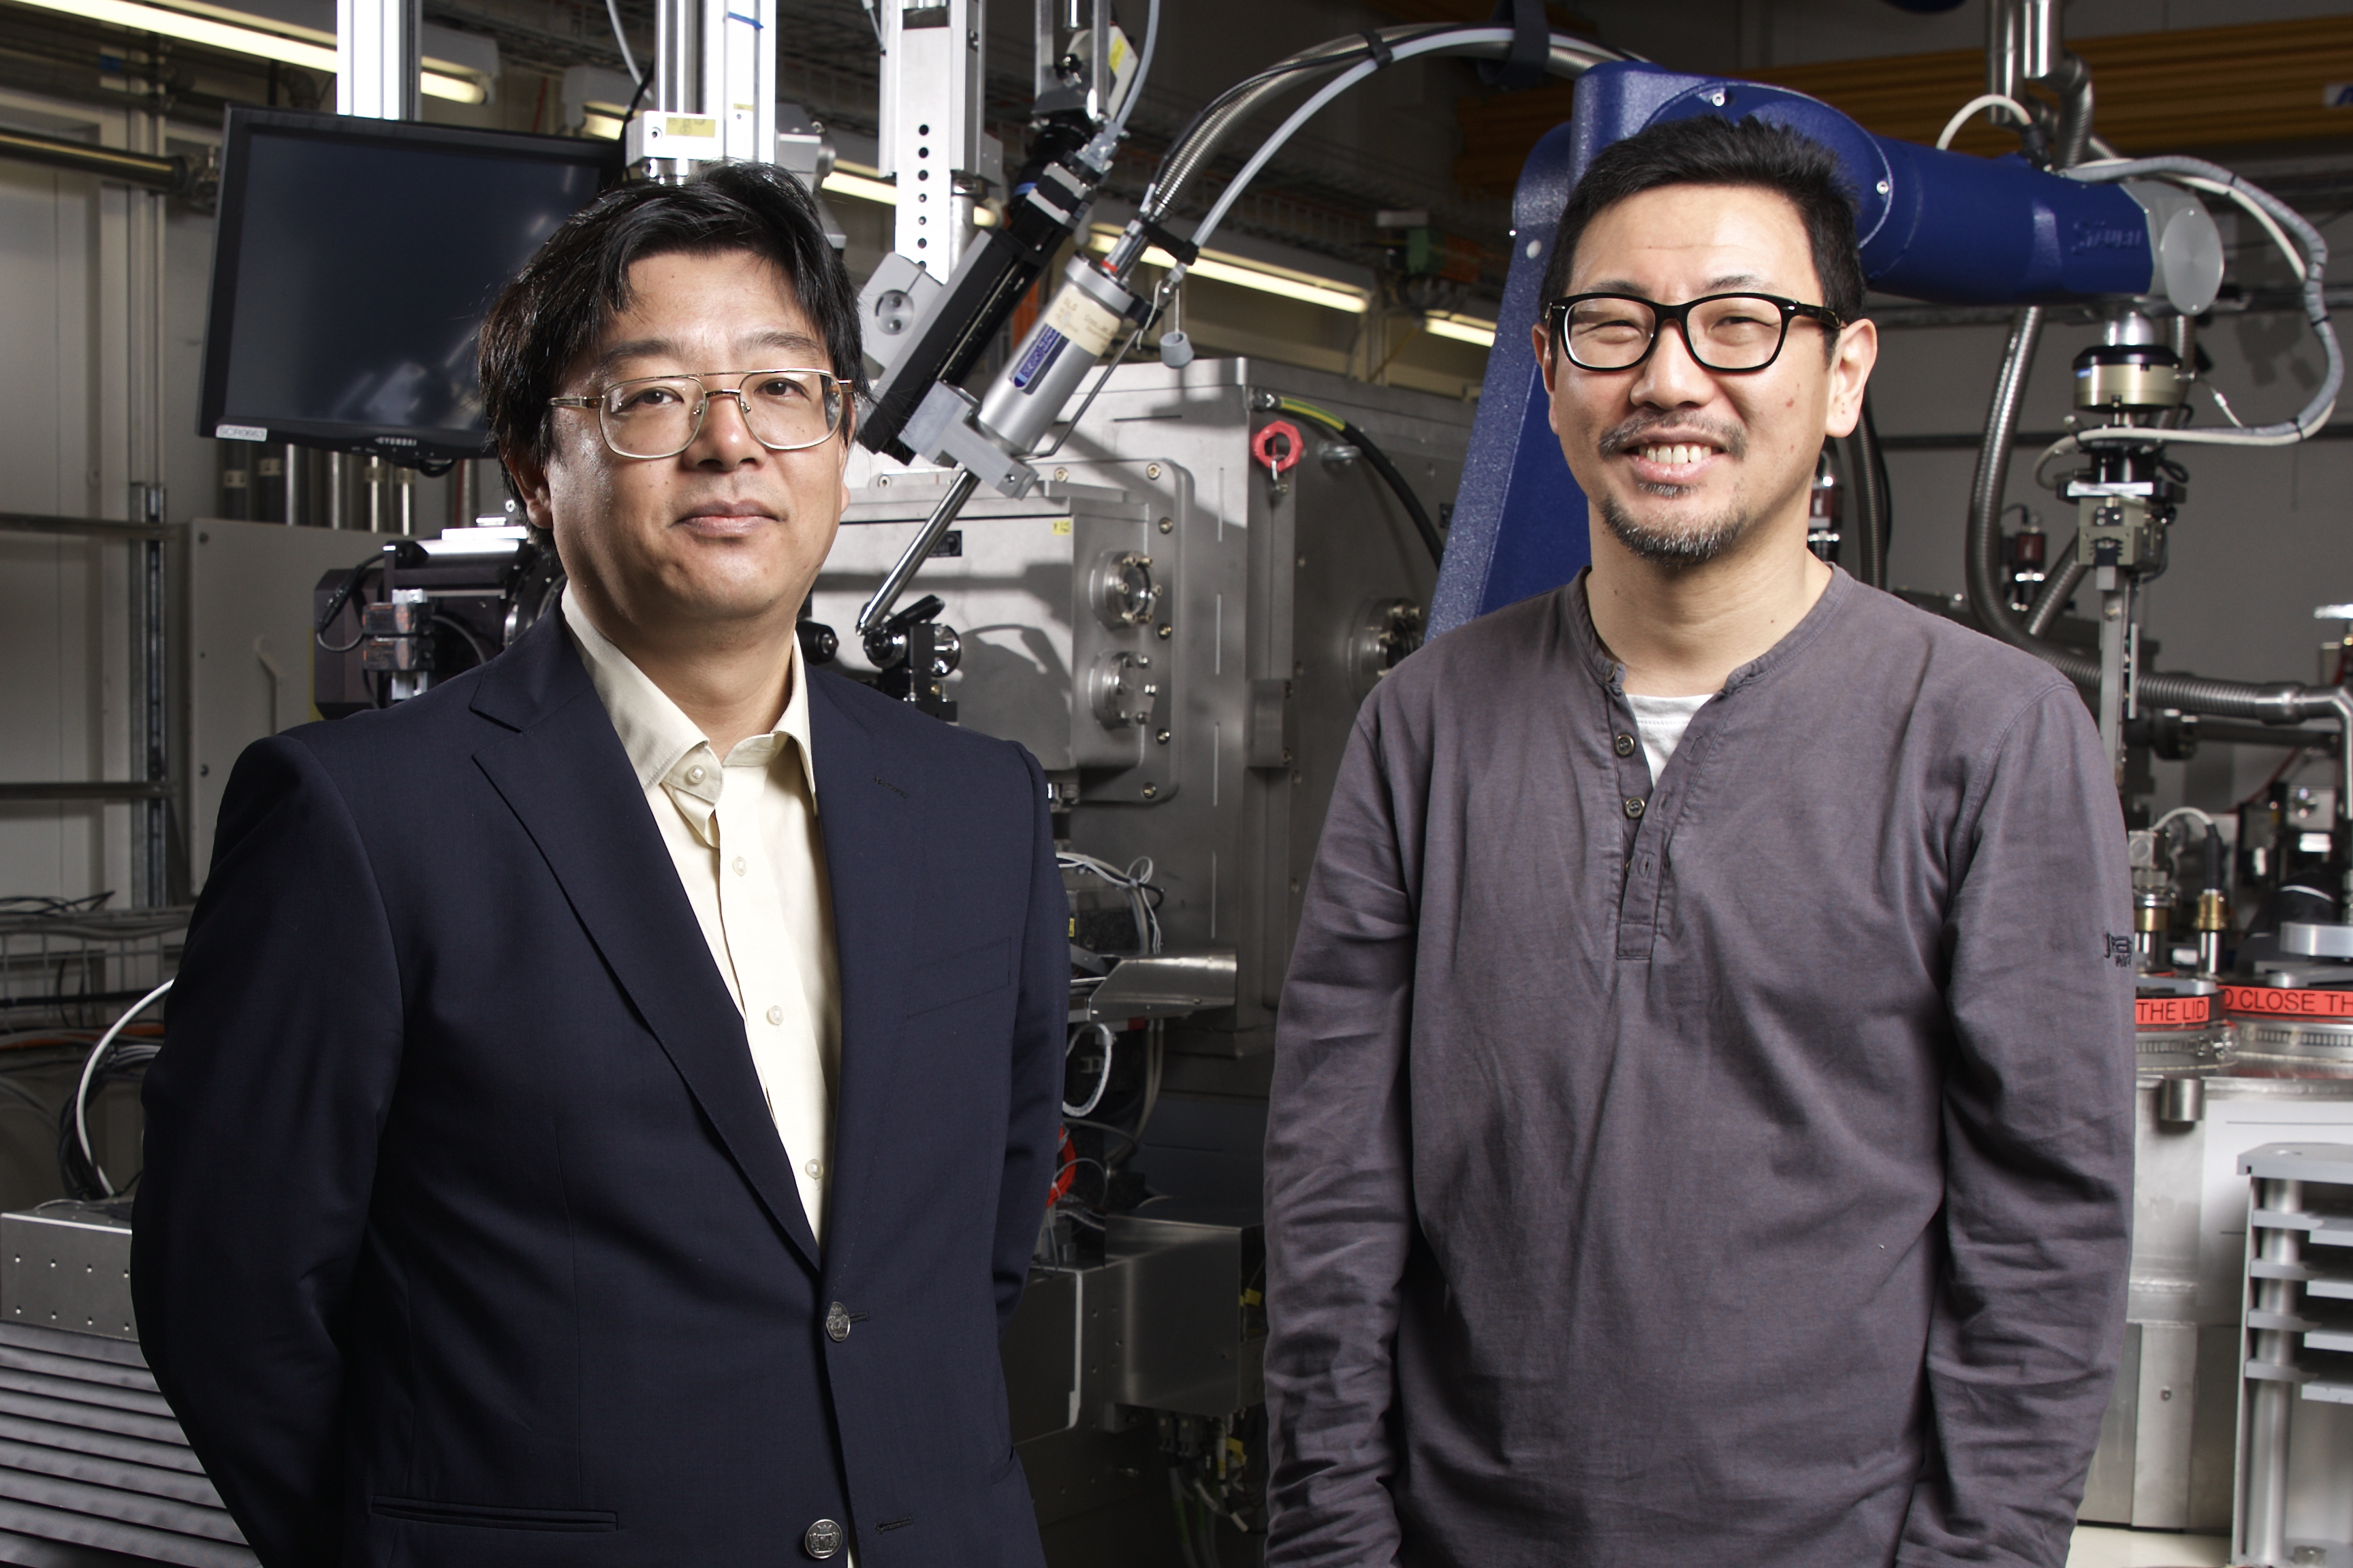 Soichiro Tsujino und Takashi Tomizaki at the macromolecular crystallography beamline at the SLS. The two scientists succeeded in analysing the structure of a protein at room temperature. To do that, they made a protein crystal in a drop of liquid hover in the air. (Photo: Paul Scherrer Institute/Markus Fischer)